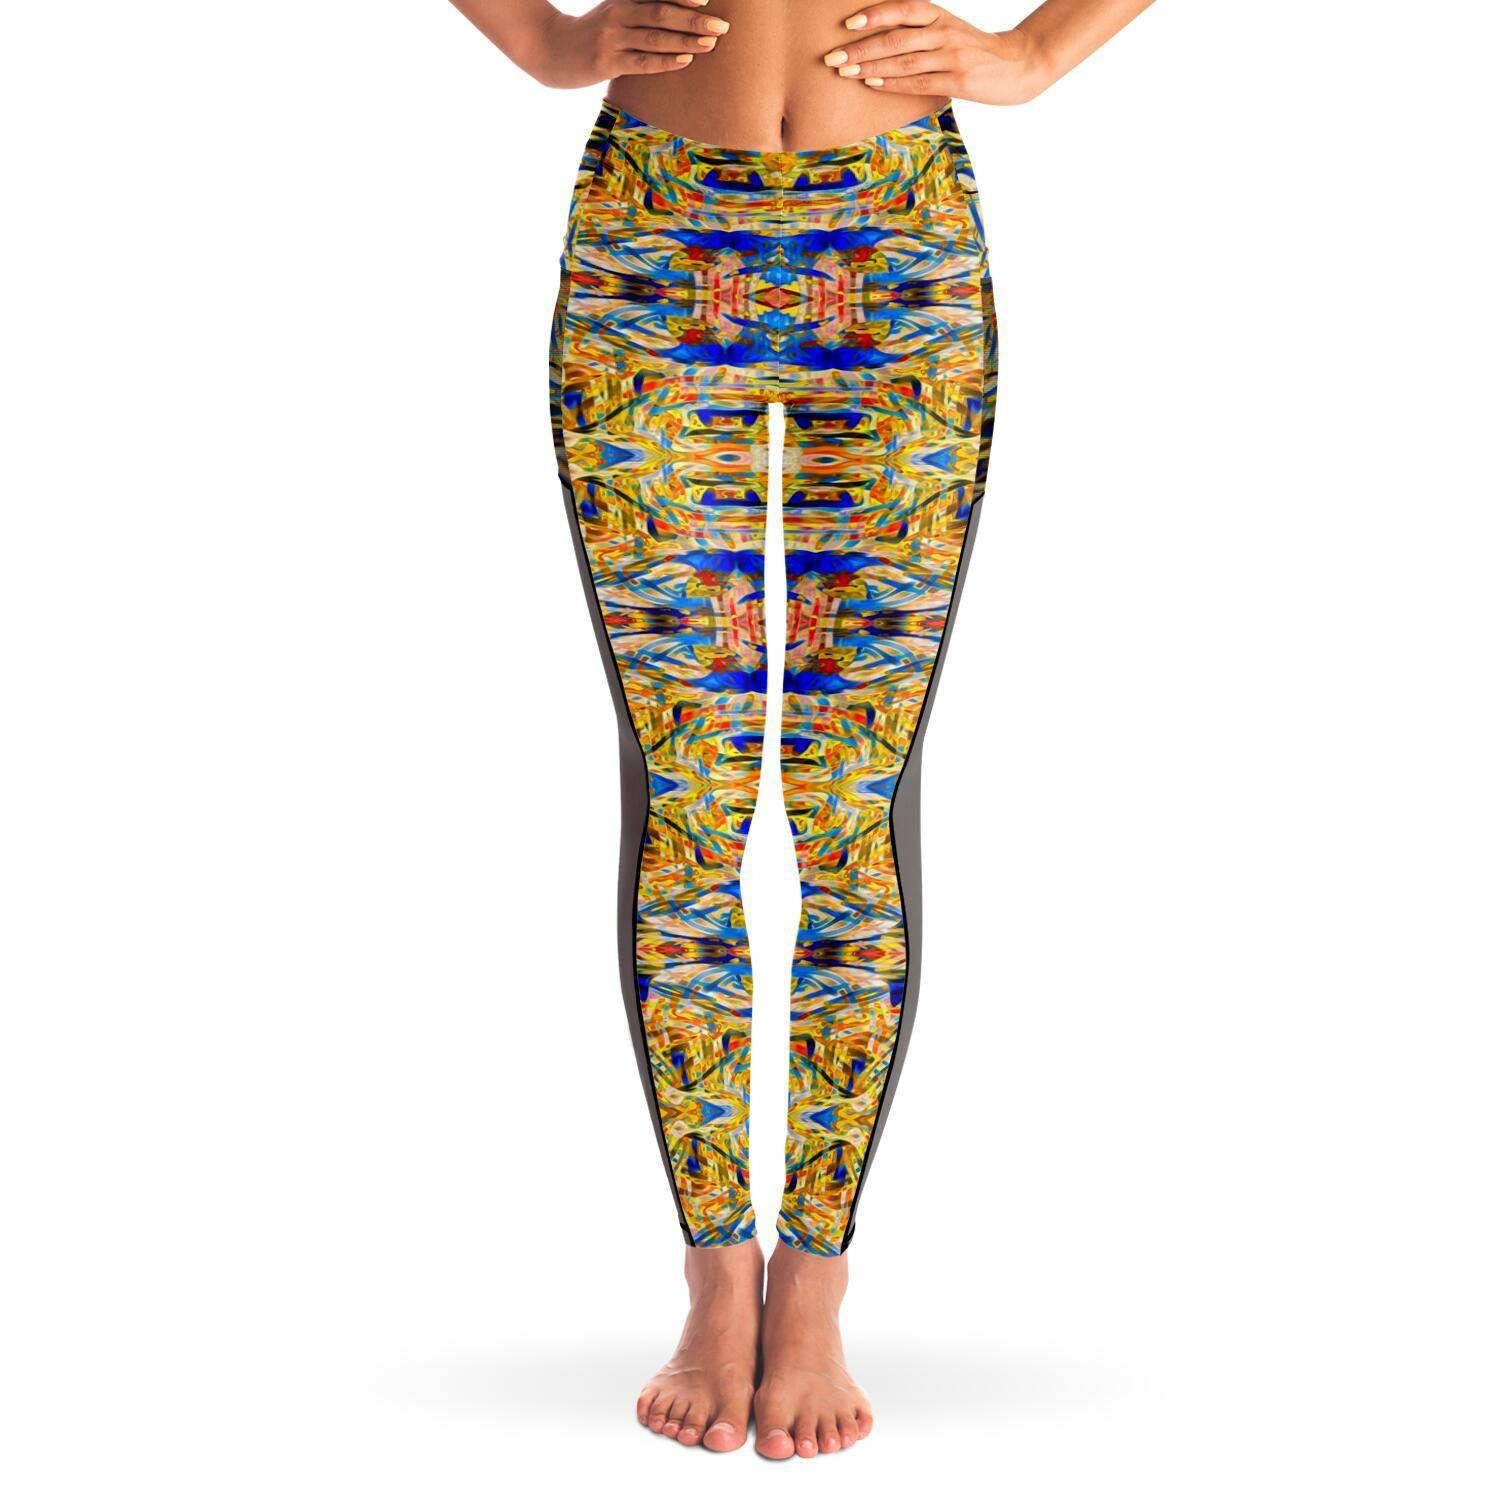 STAR CHASER PREMIUM MESH POCKET YOGA LEGGINGS